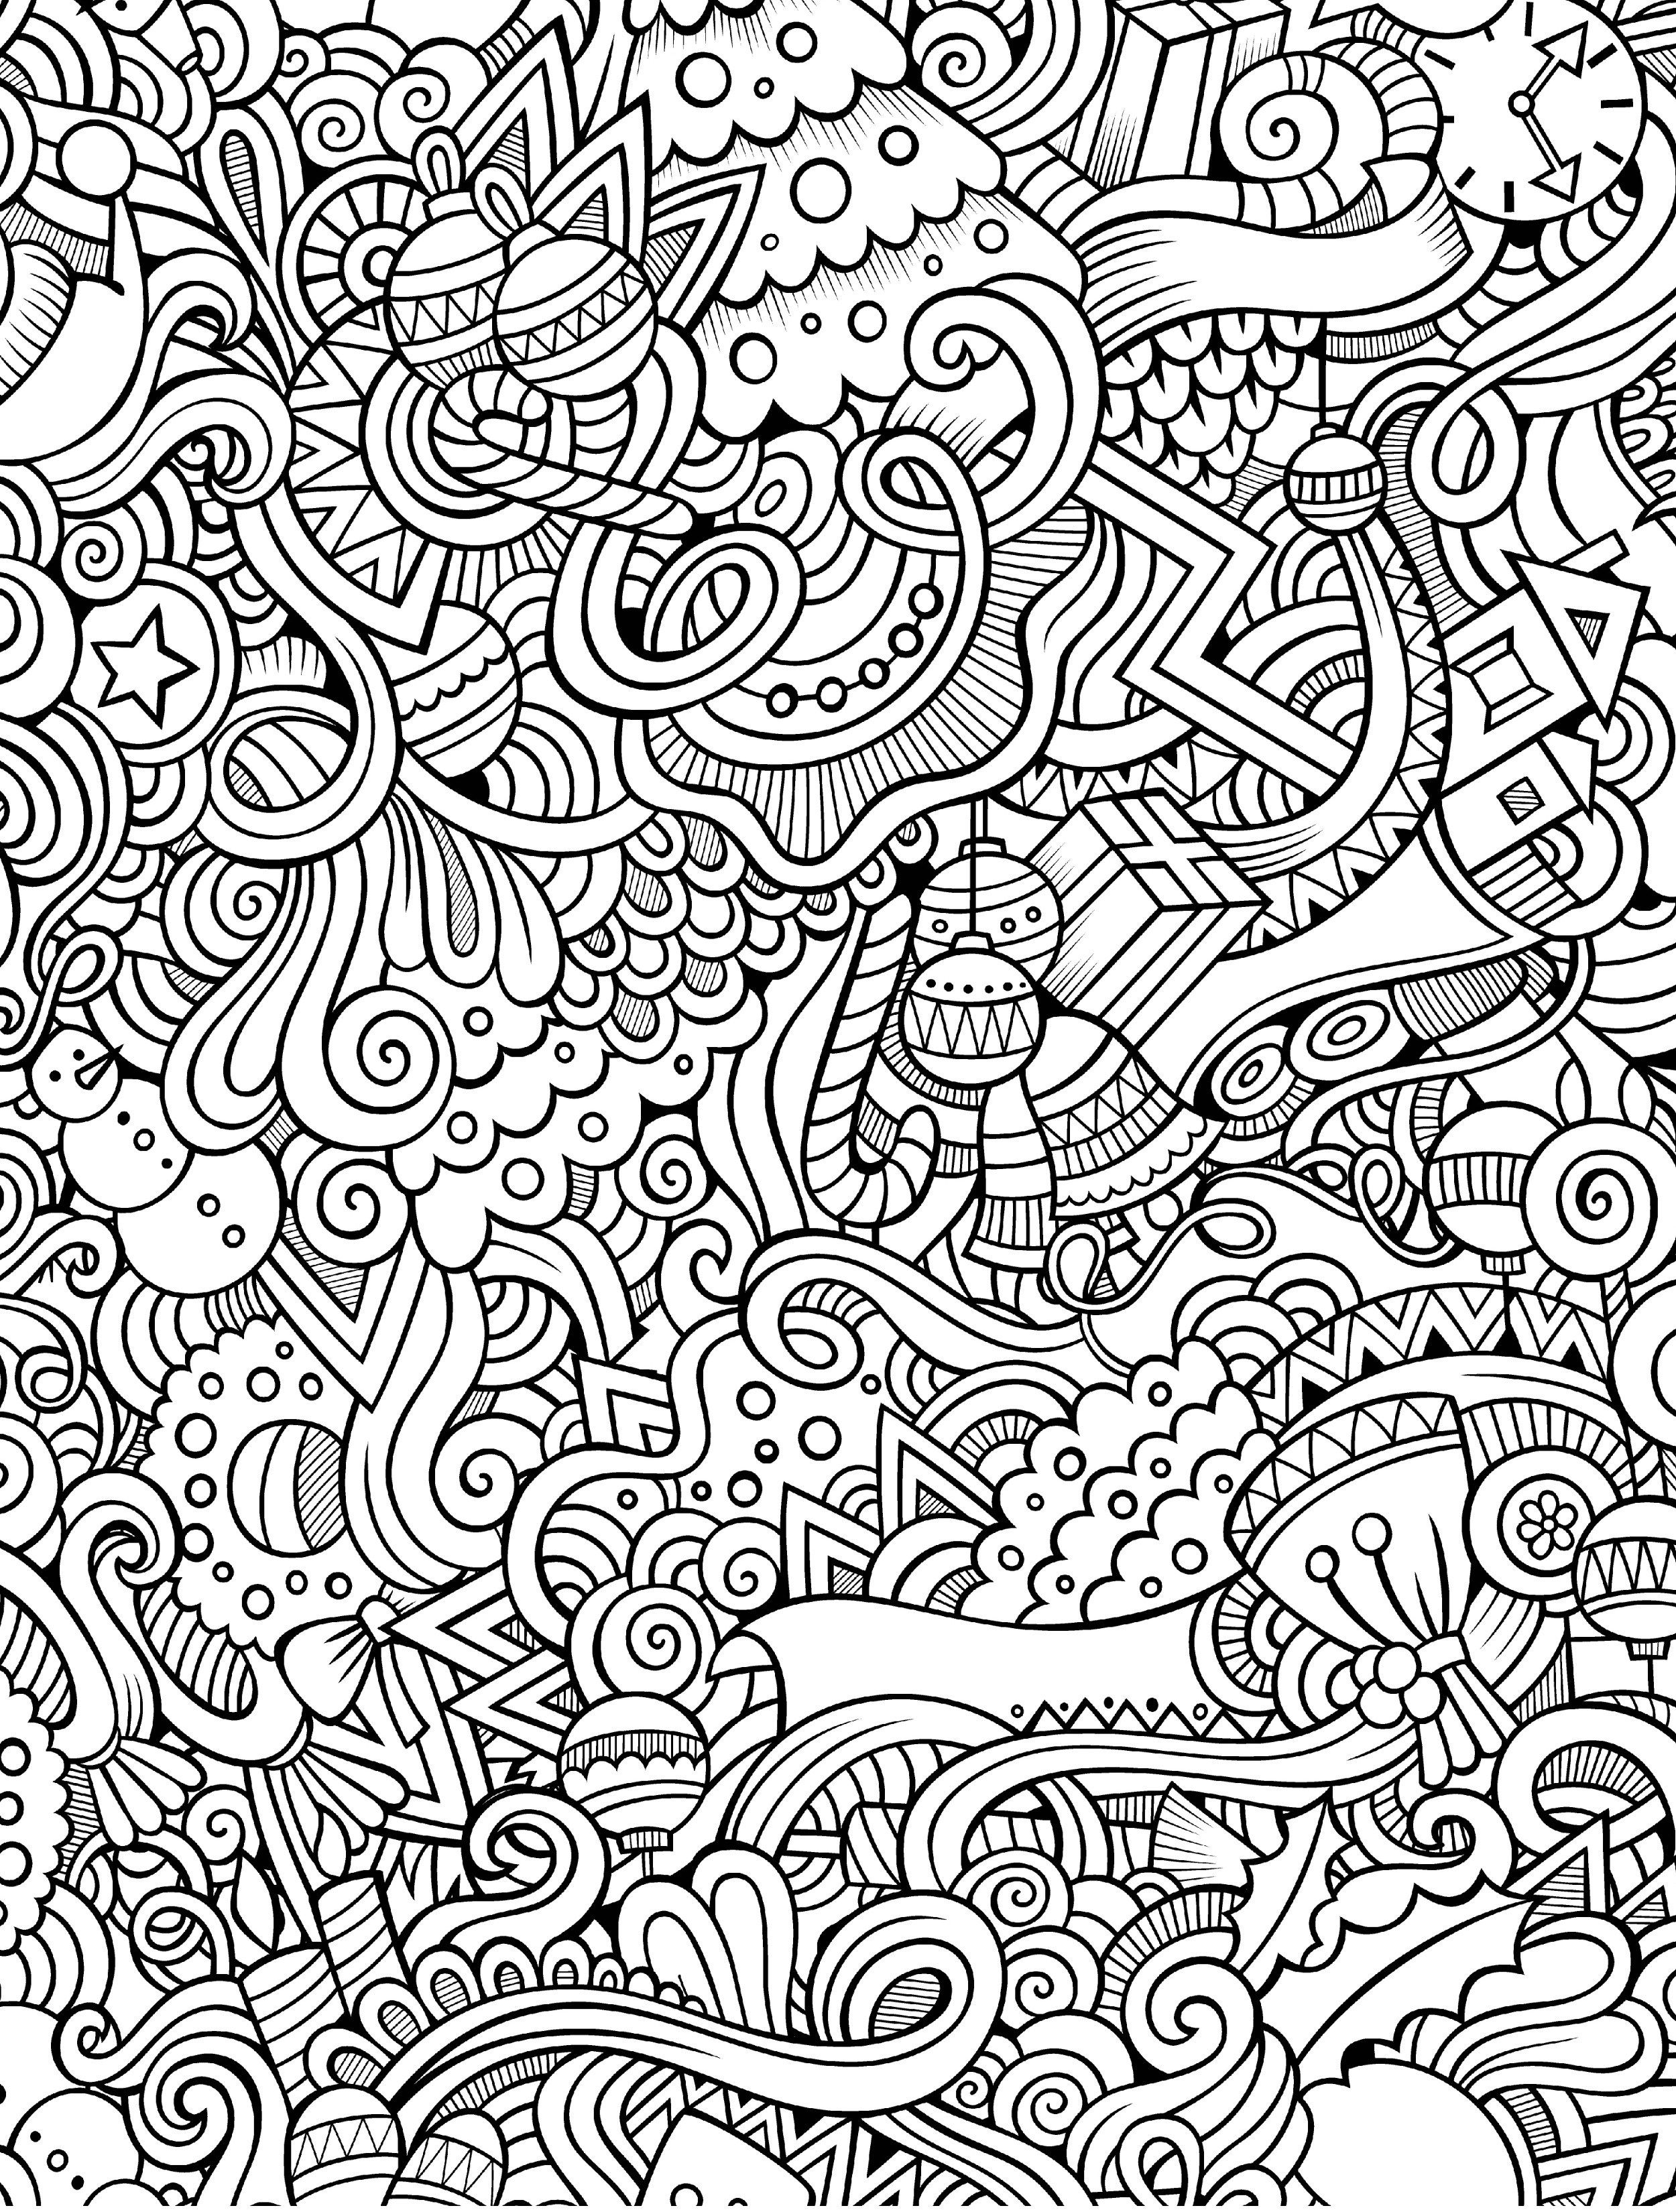 10 Free Printable Holiday Adult Coloring Pages Pattern